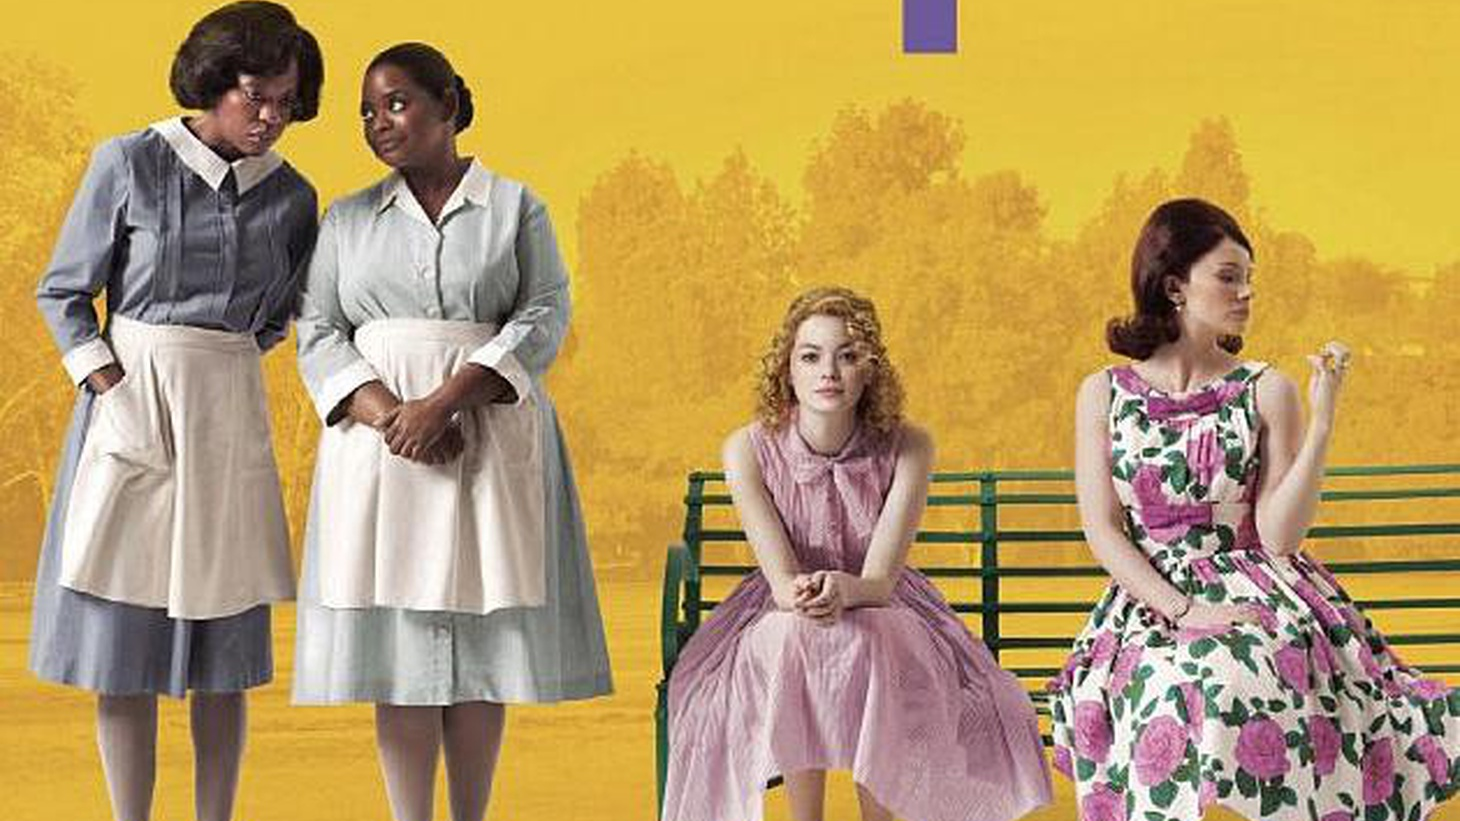 This week, Kathryn Stockett, author of the bestselling novel The Help, and her childhood friend Tate Taylor, who has written and directed the new movie based on the book.